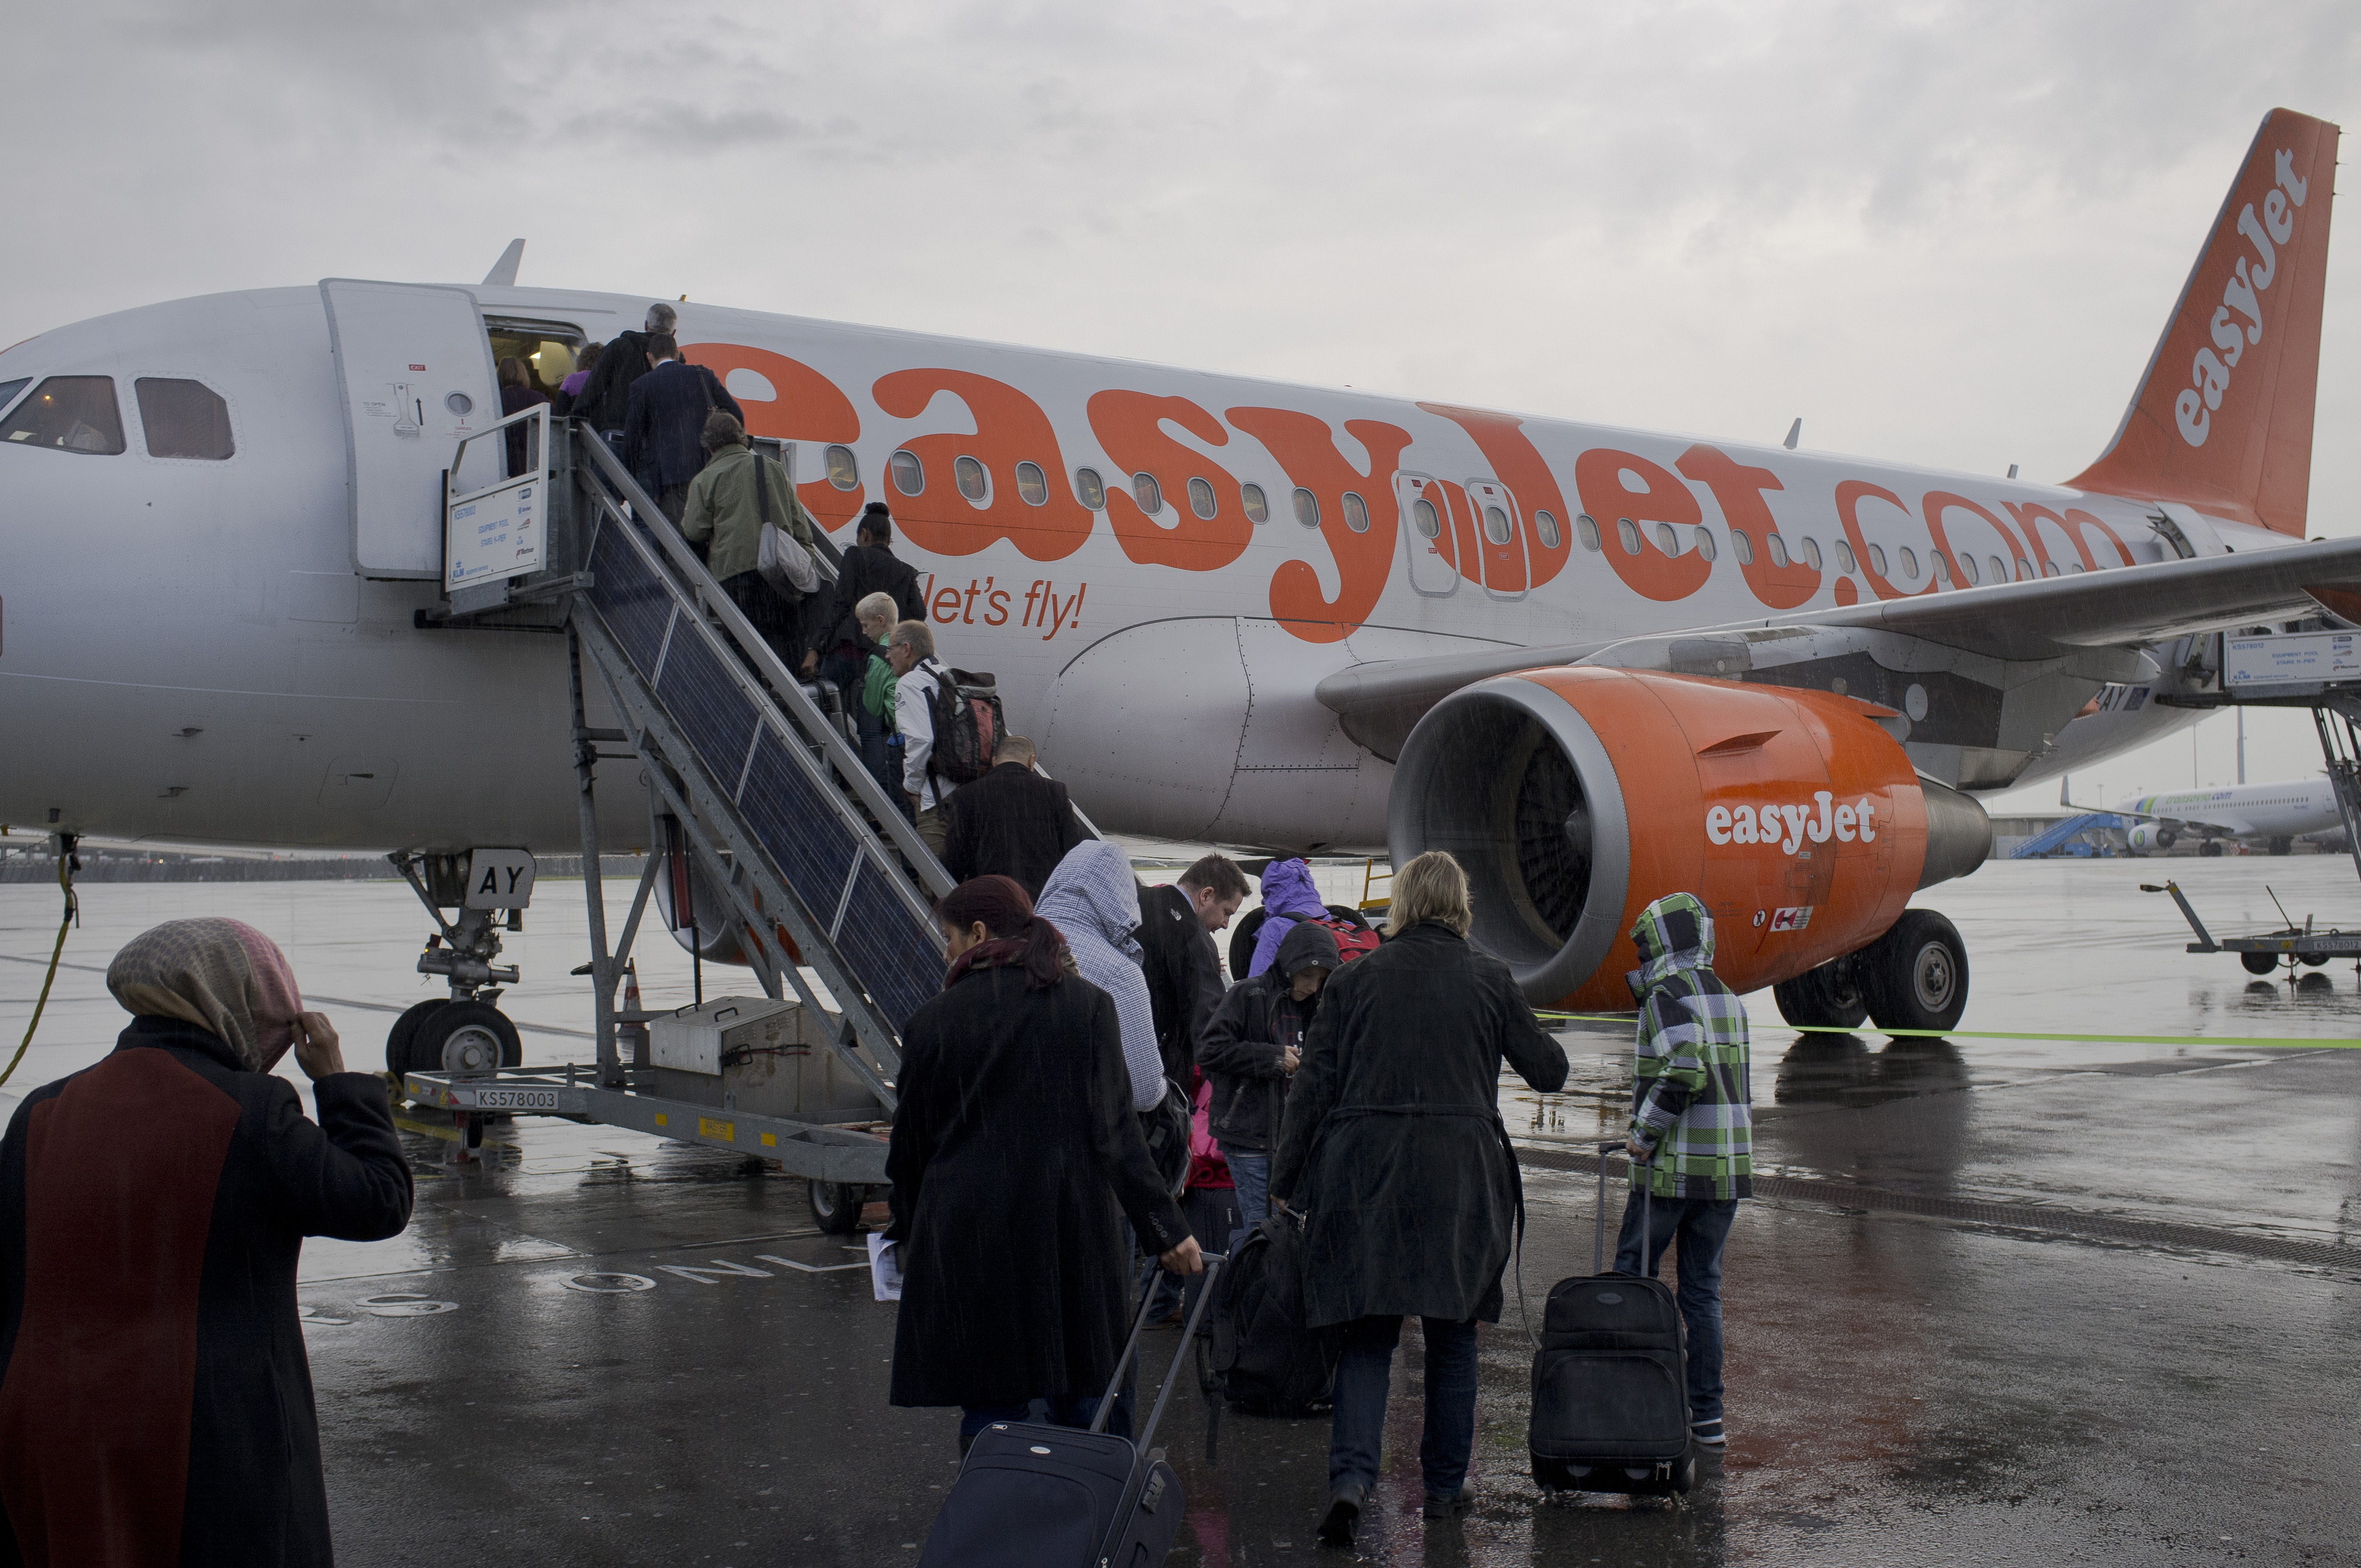 Doubts cast on easyJet plan to be net-zero emissions airline